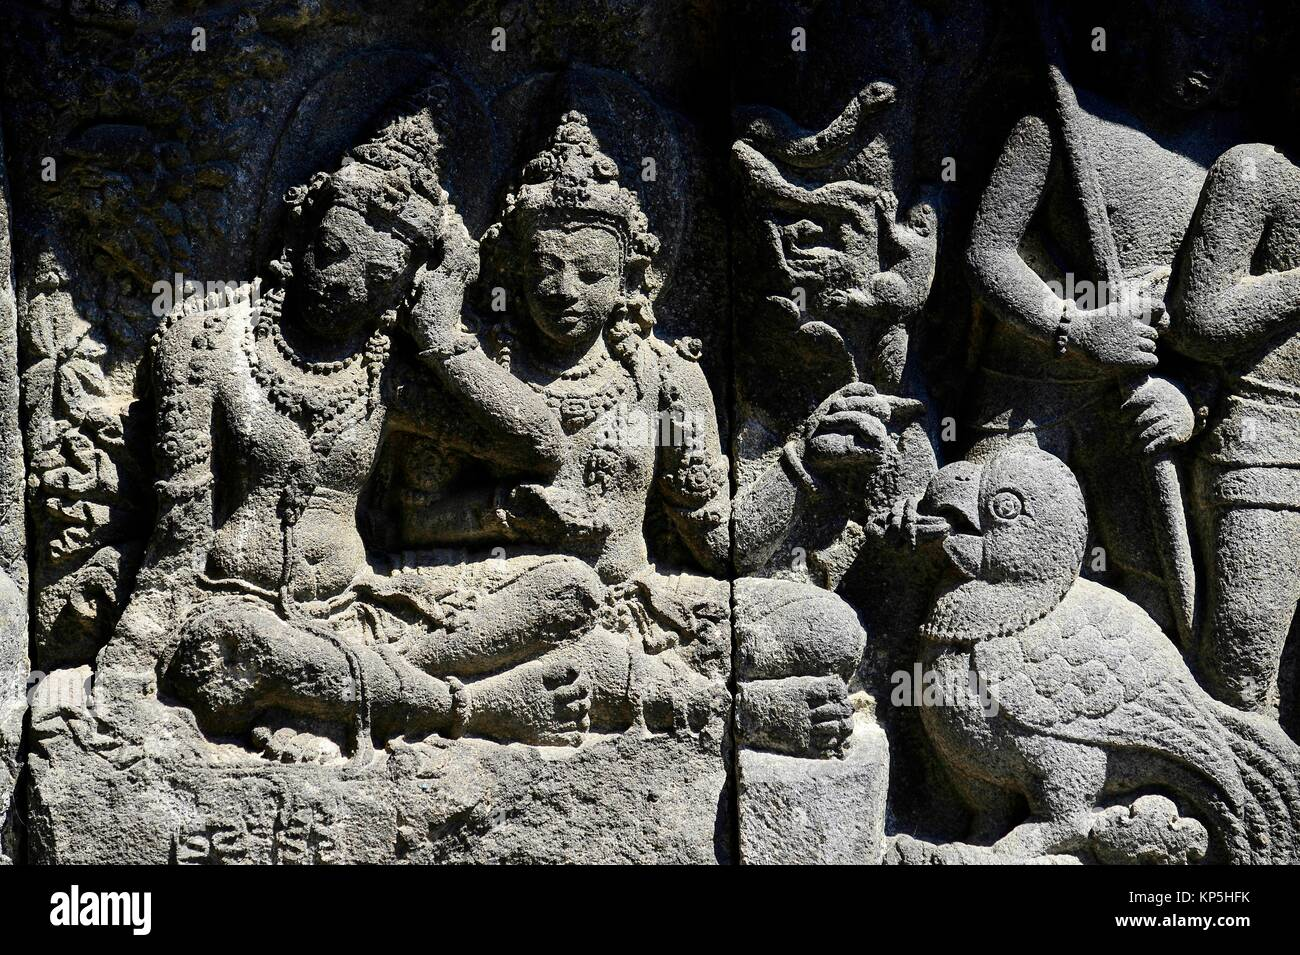 Relief panel of Prambanan Temple,Central Java, Indonesia. - Stock Image